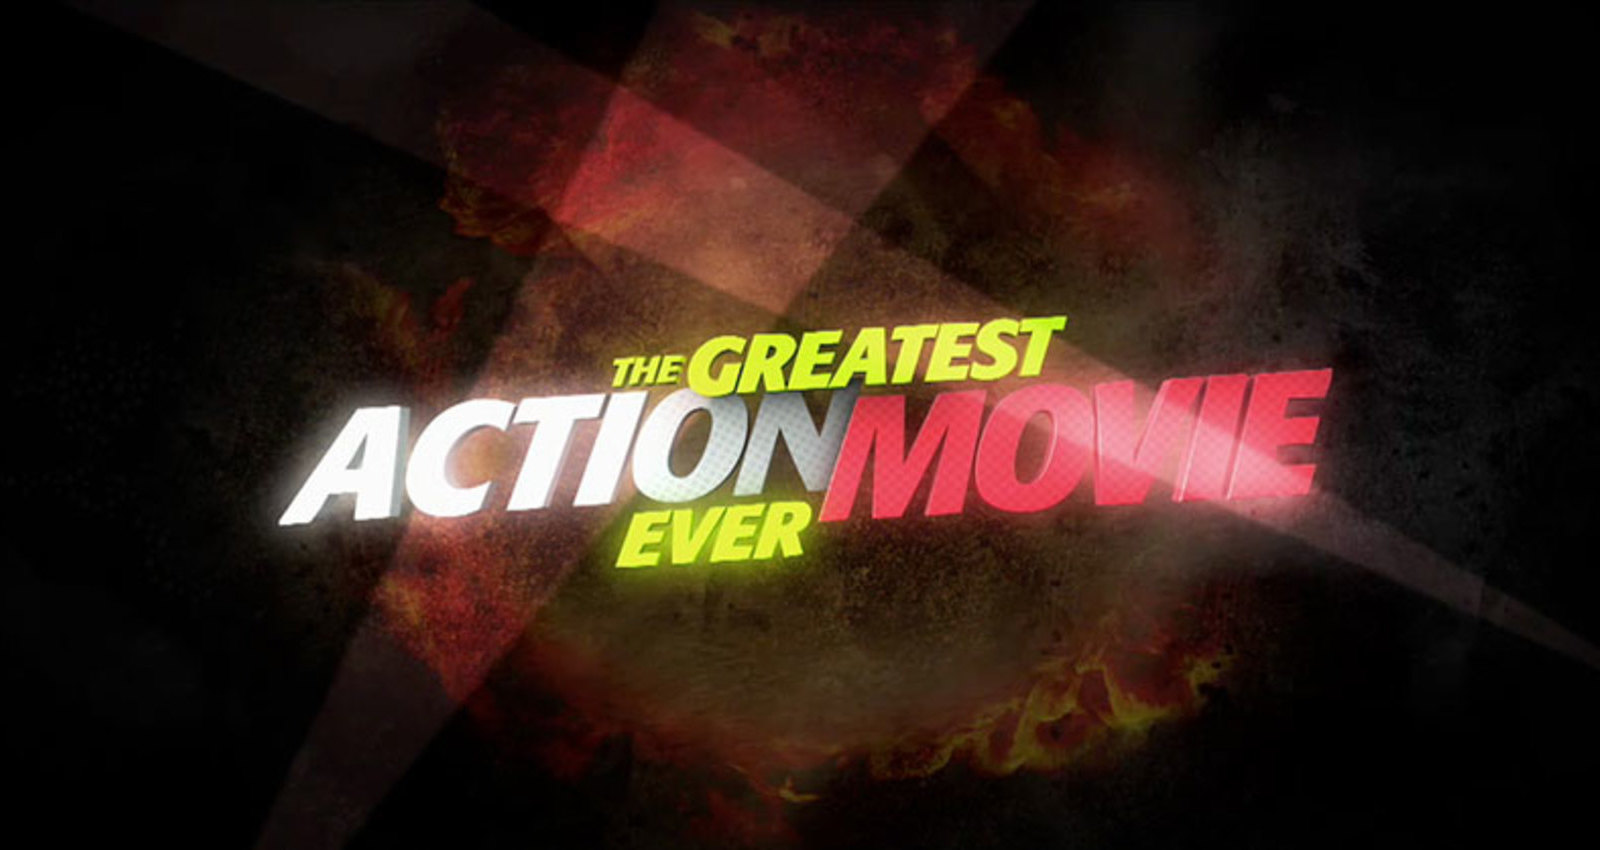 The Greatest Action Movie Ever